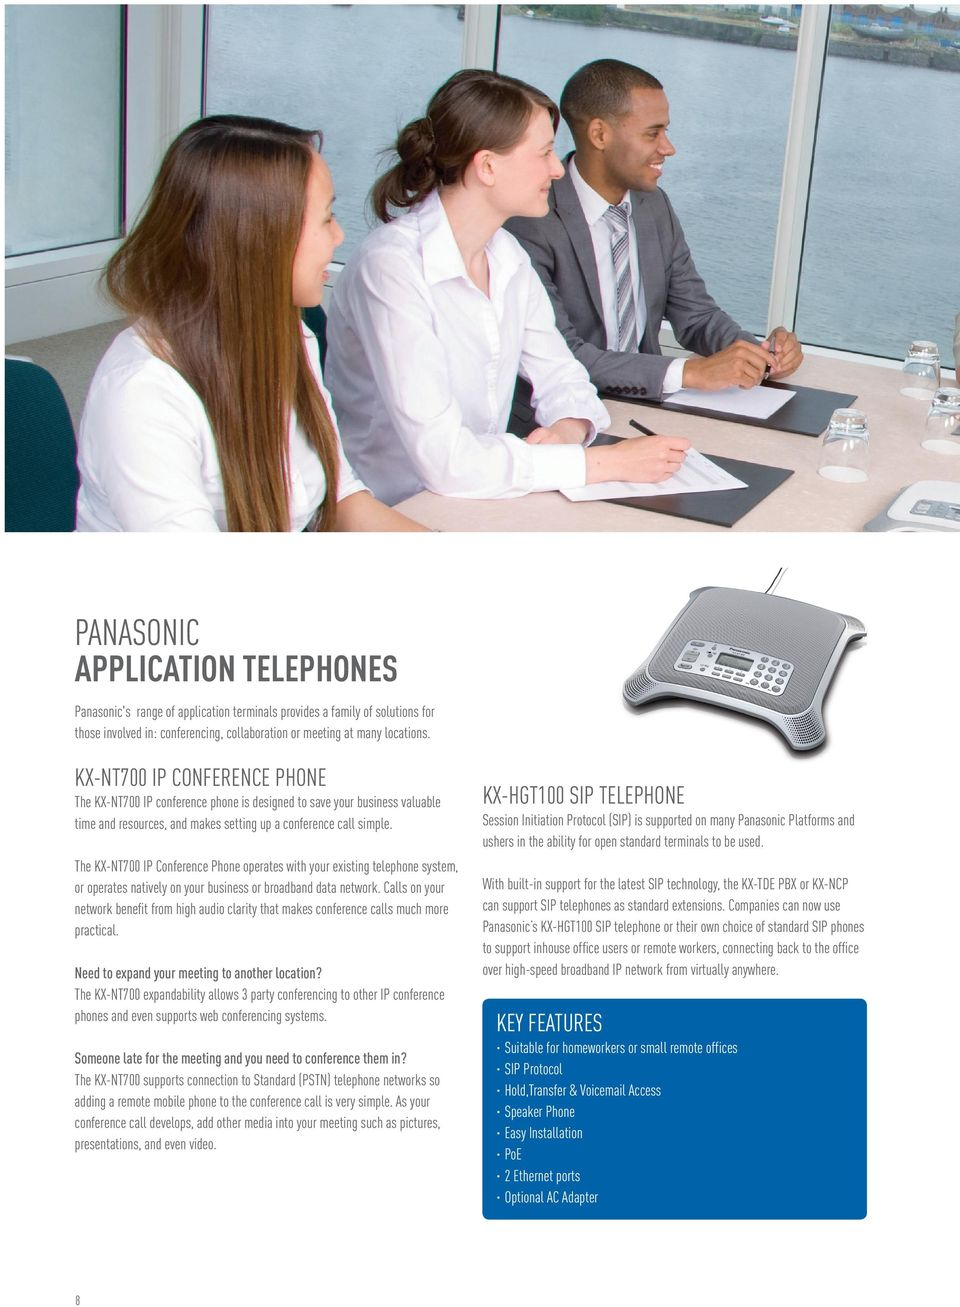 The KX-NT700 IP Conference Phone operates with your existing telephone system, or operates natively on your business or broadband data network.